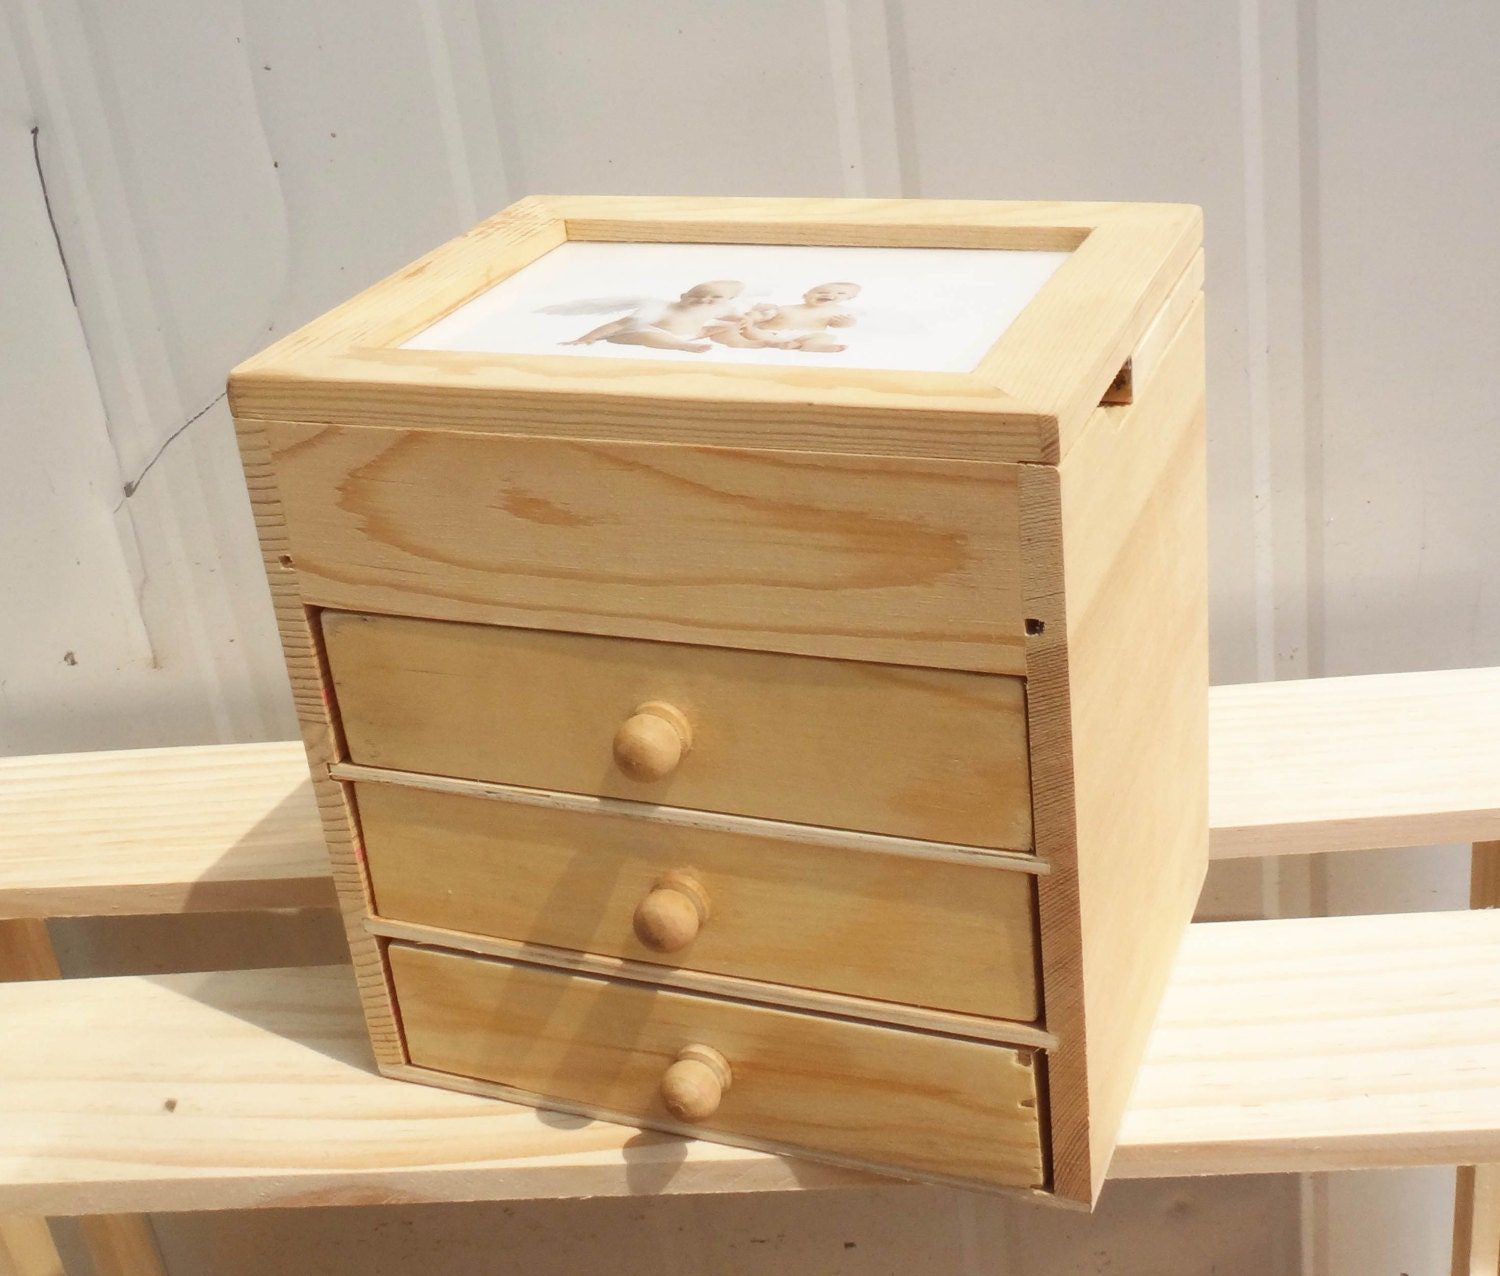 how to make a small jewelry box out of wood